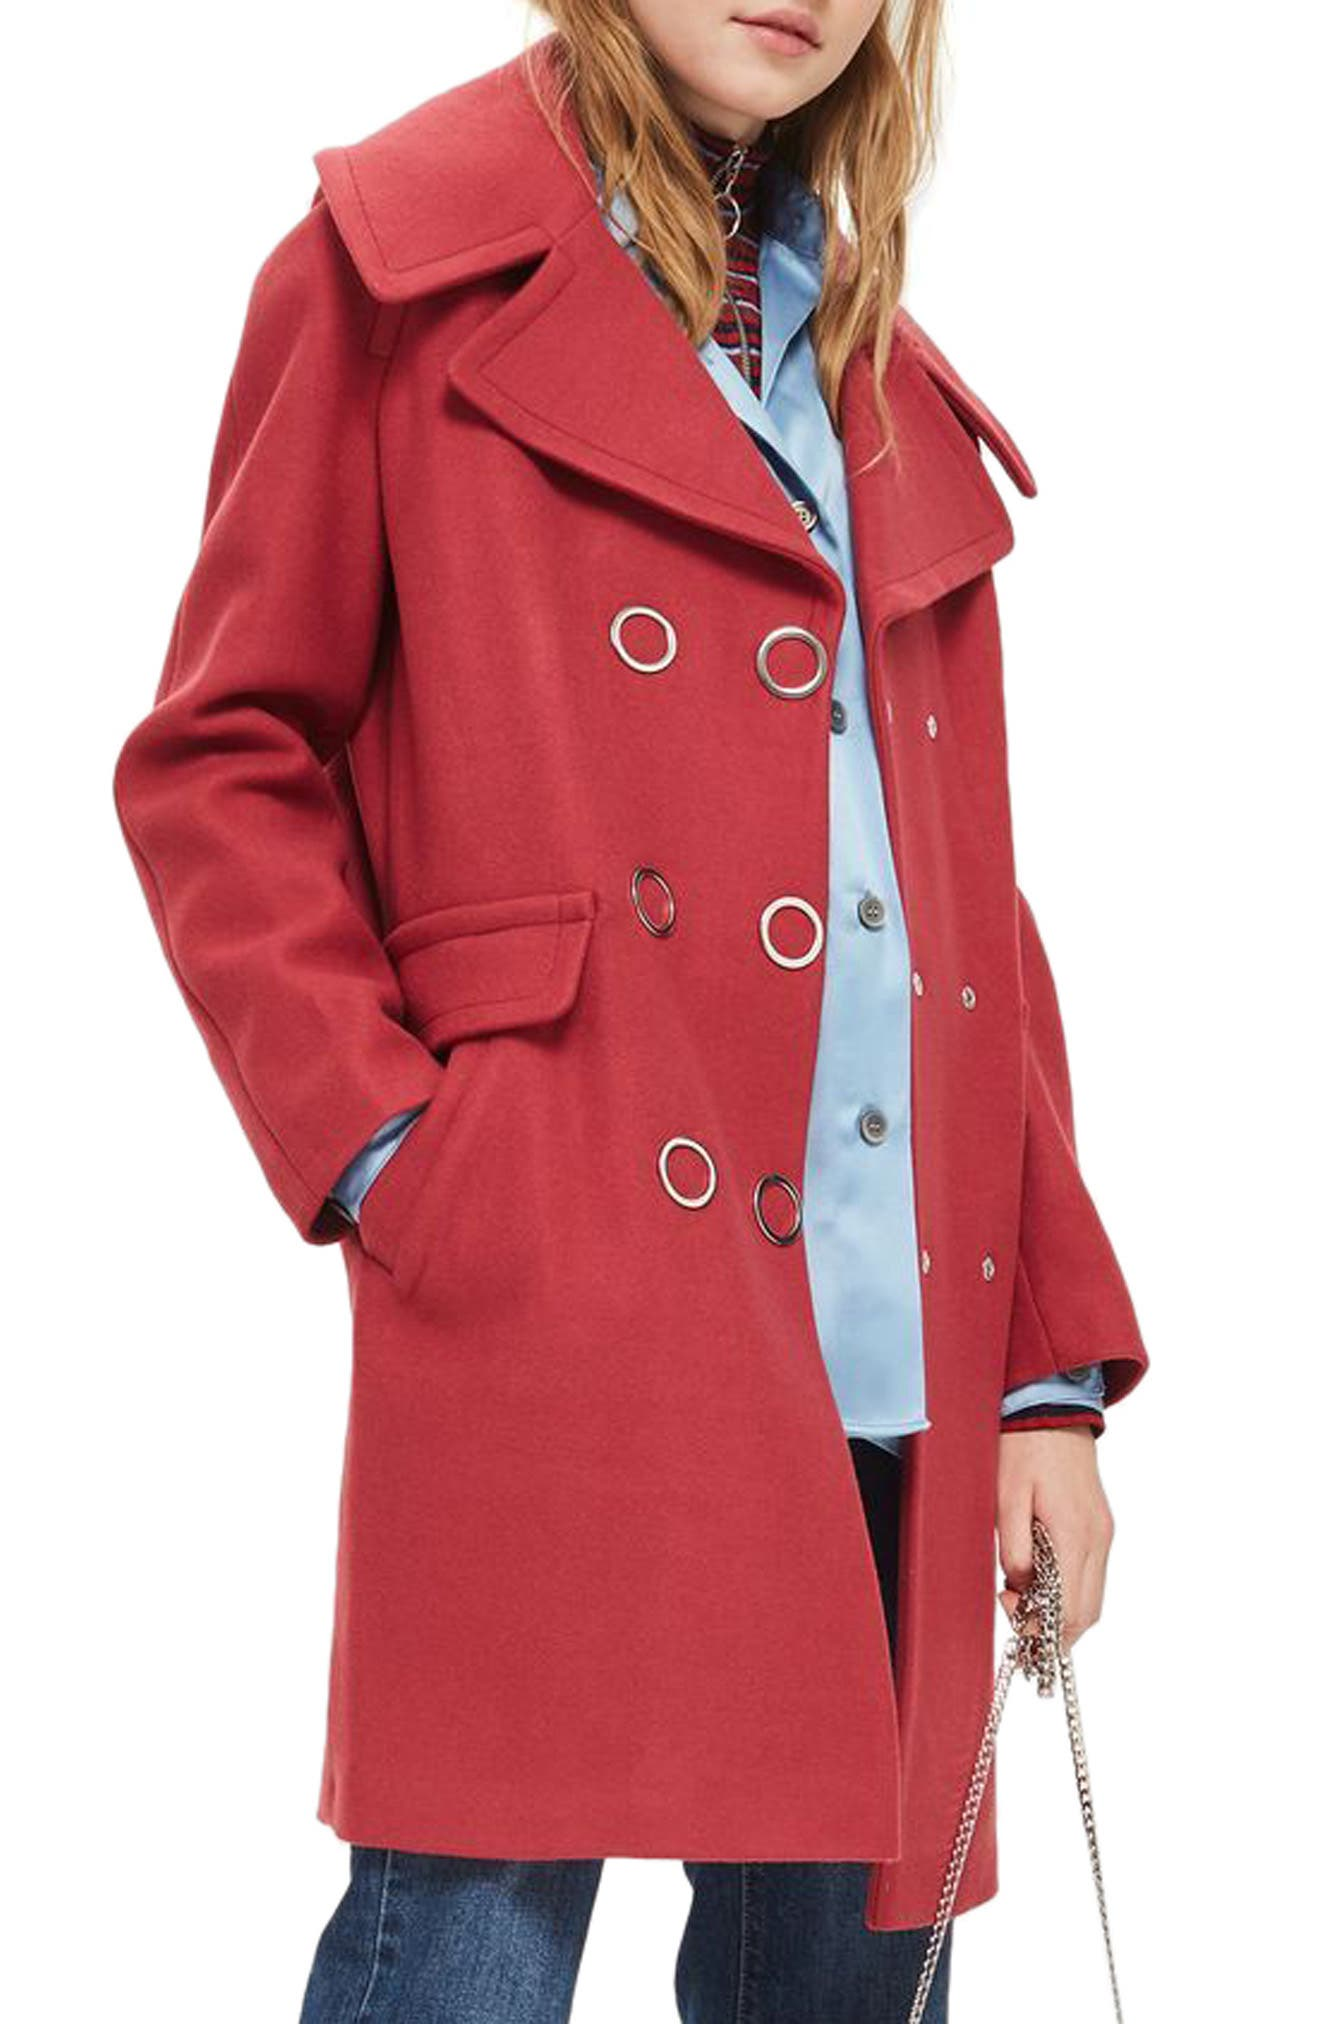 Ring Popper Cocoon Coat,                         Main,                         color, Light Red